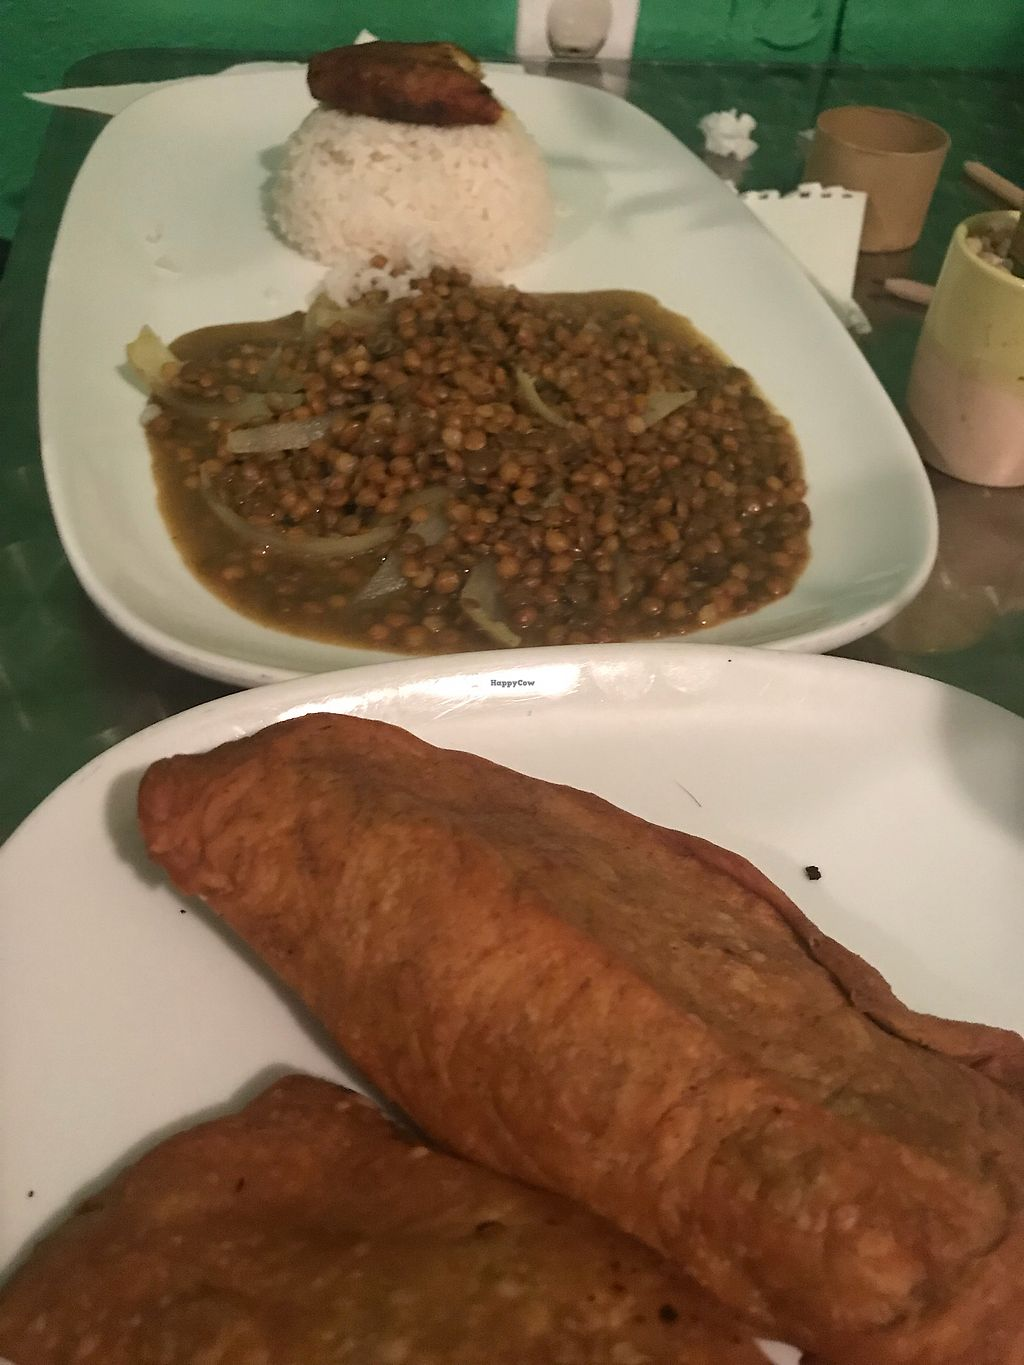 """Photo of Yardie Spice  by <a href=""""/members/profile/CaraMia"""">CaraMia</a> <br/>Empanadas and curry lentil <br/> November 12, 2017  - <a href='/contact/abuse/image/79274/324494'>Report</a>"""